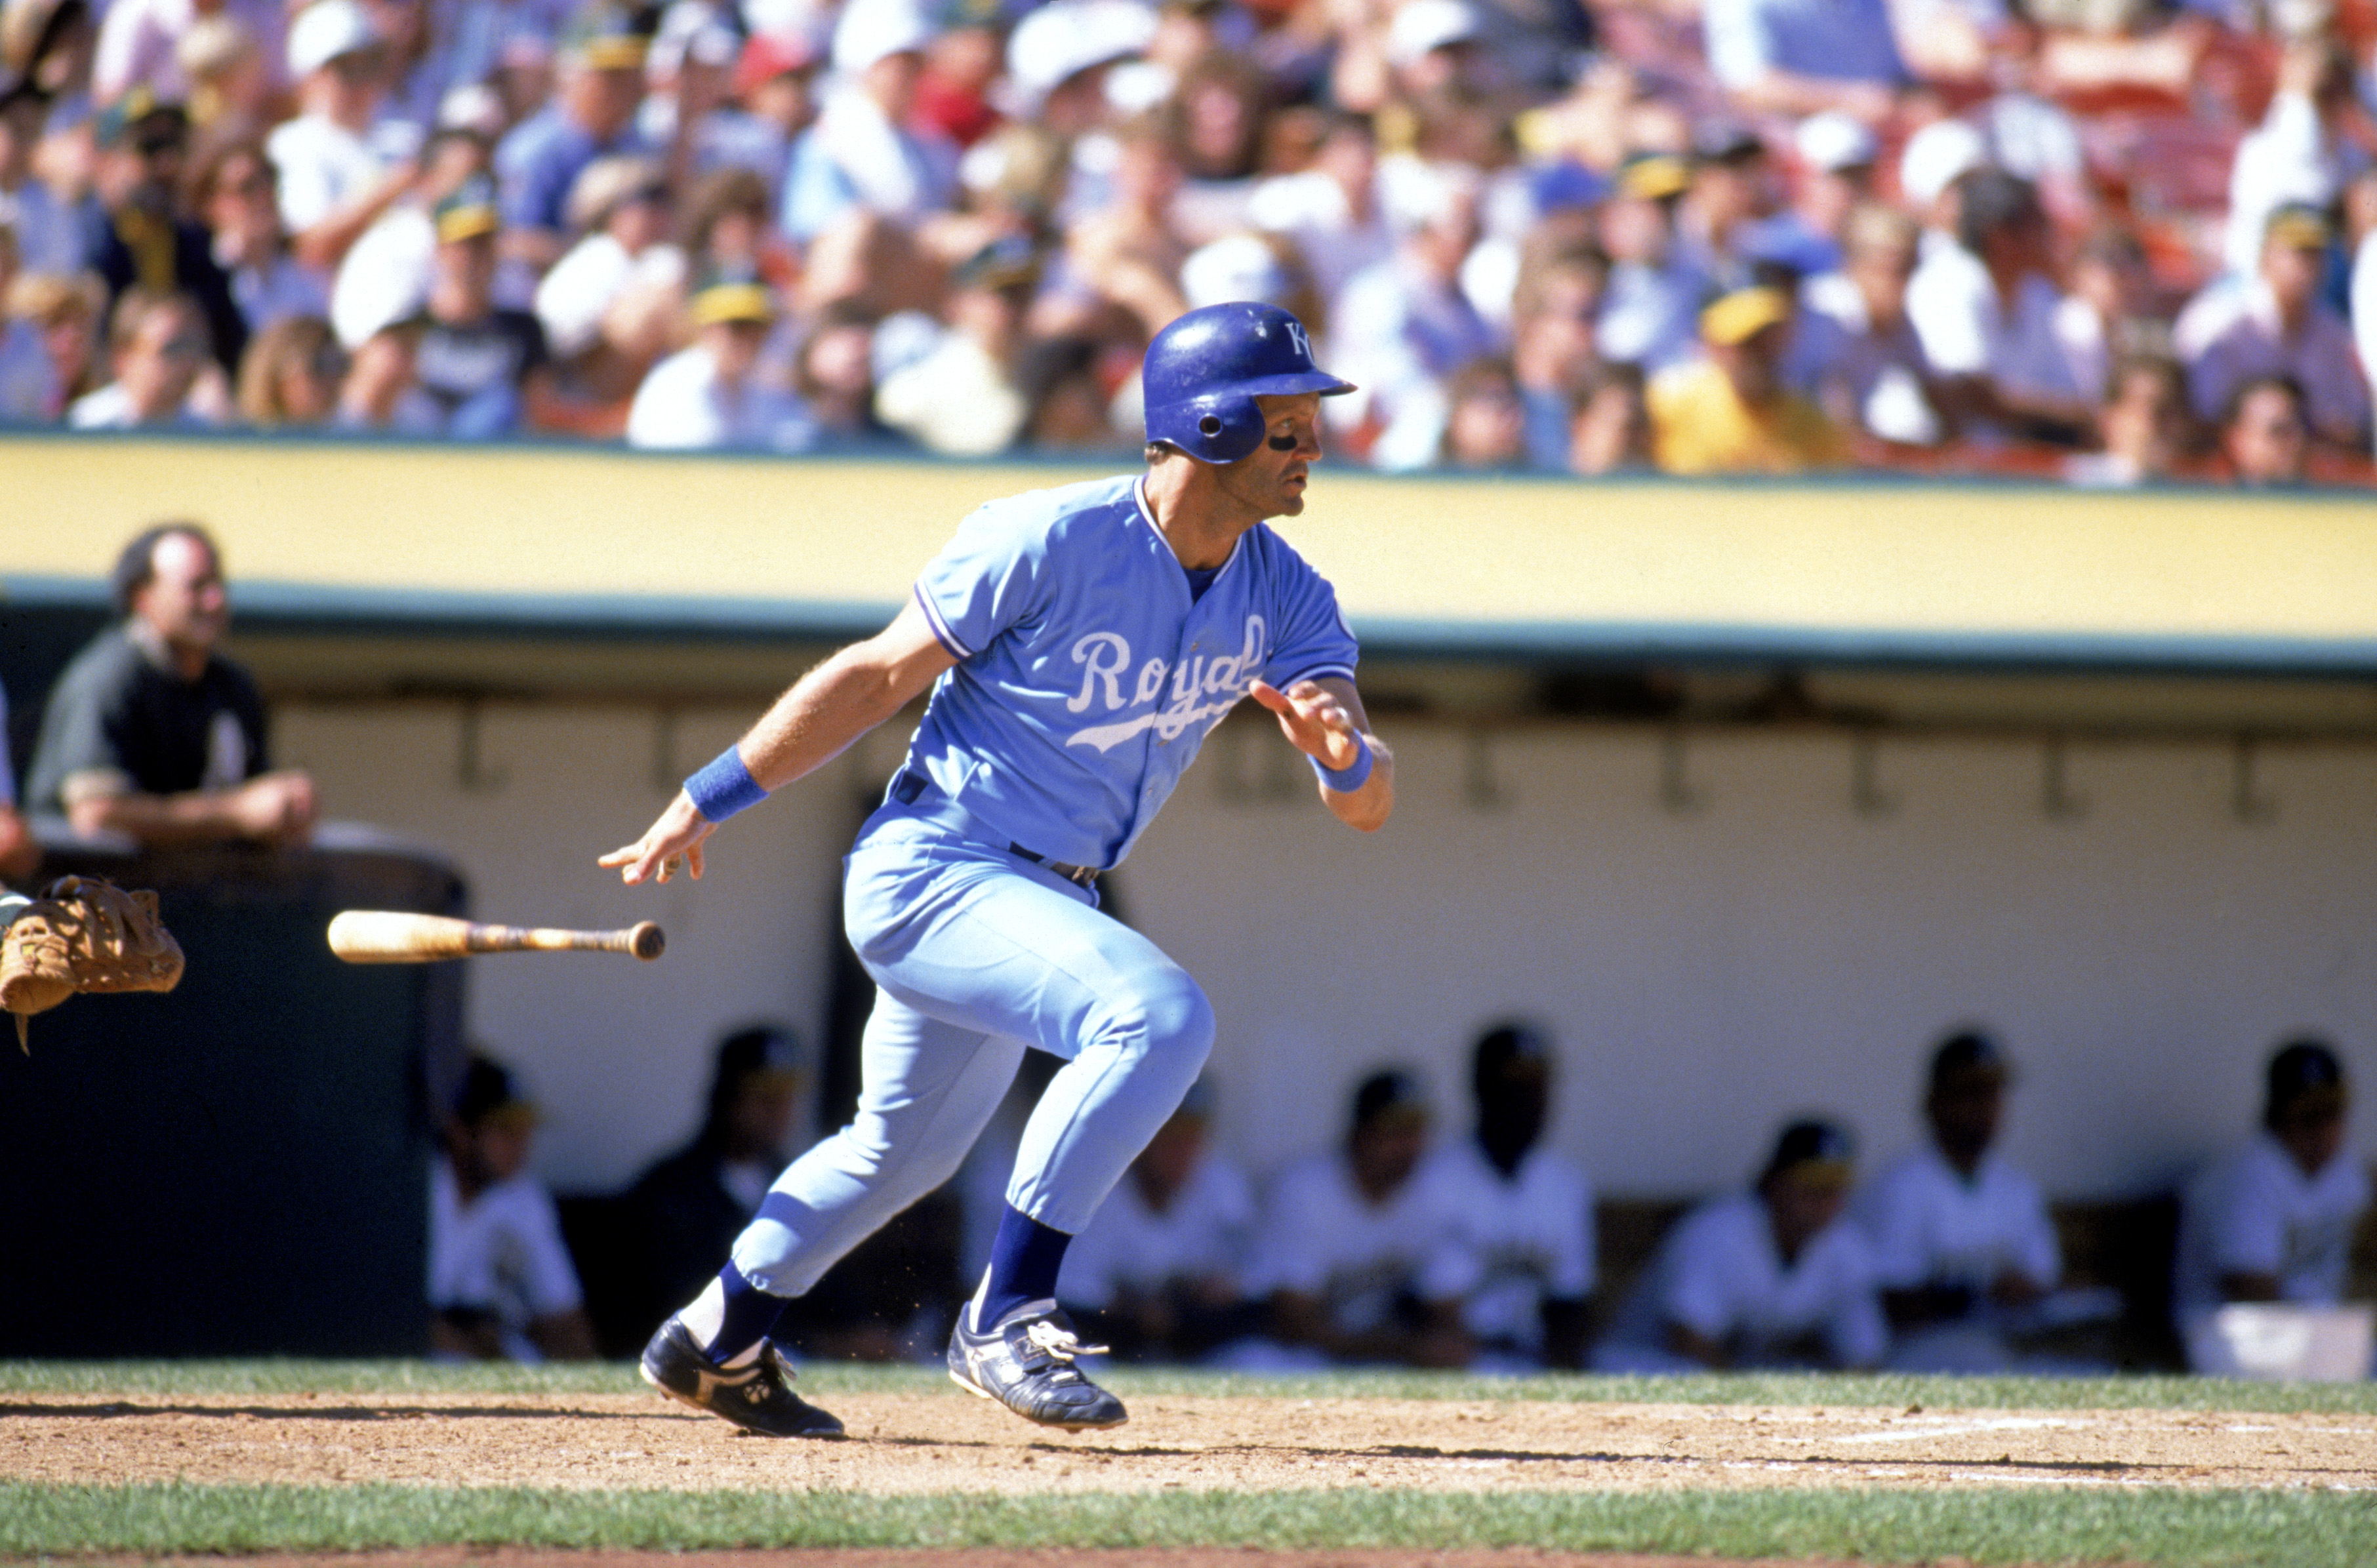 OAKLAND, CA - 1989:  George Brett #5 of the Kansas City Royals bats during a game in the 1989 season against the Oakland Athletics at Oakland-Alameda Coliseum in Oakland, California. (Photo by Otto Greule Jr/Getty Images)